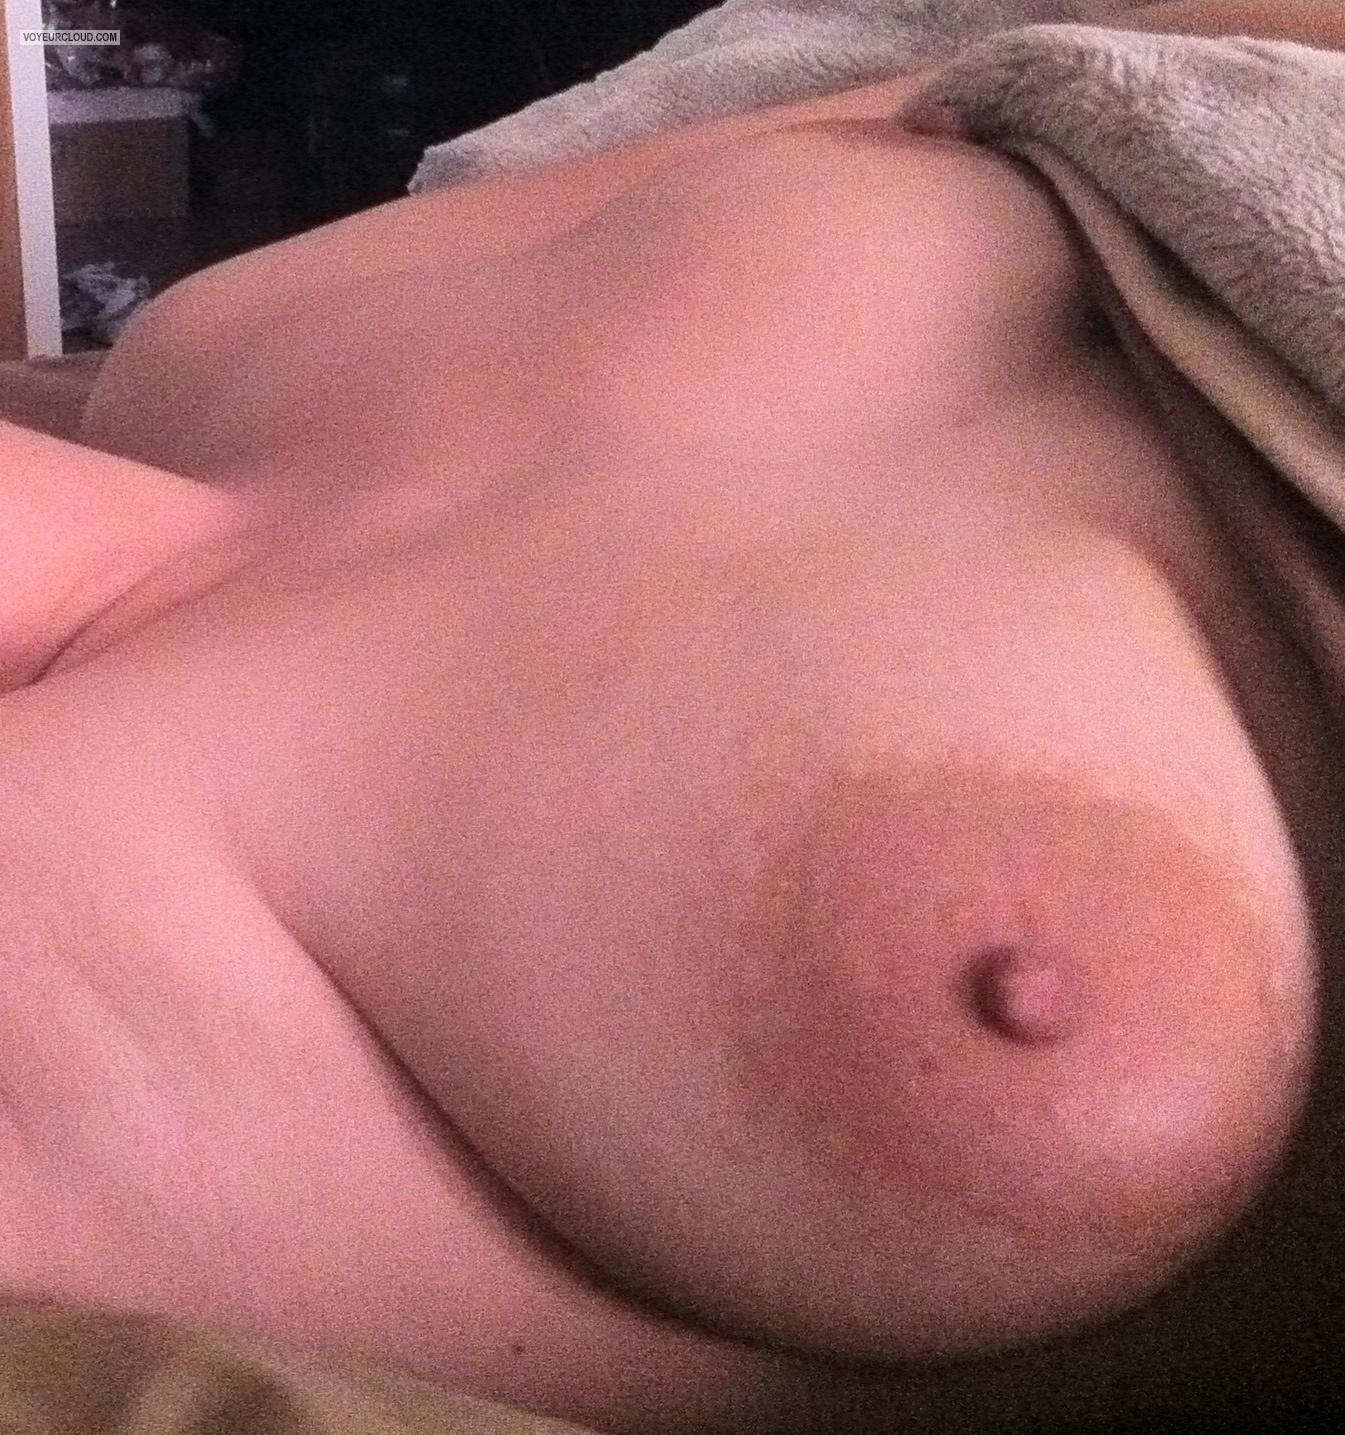 Tit Flash: Medium Tits By IPhone - Dls from United States